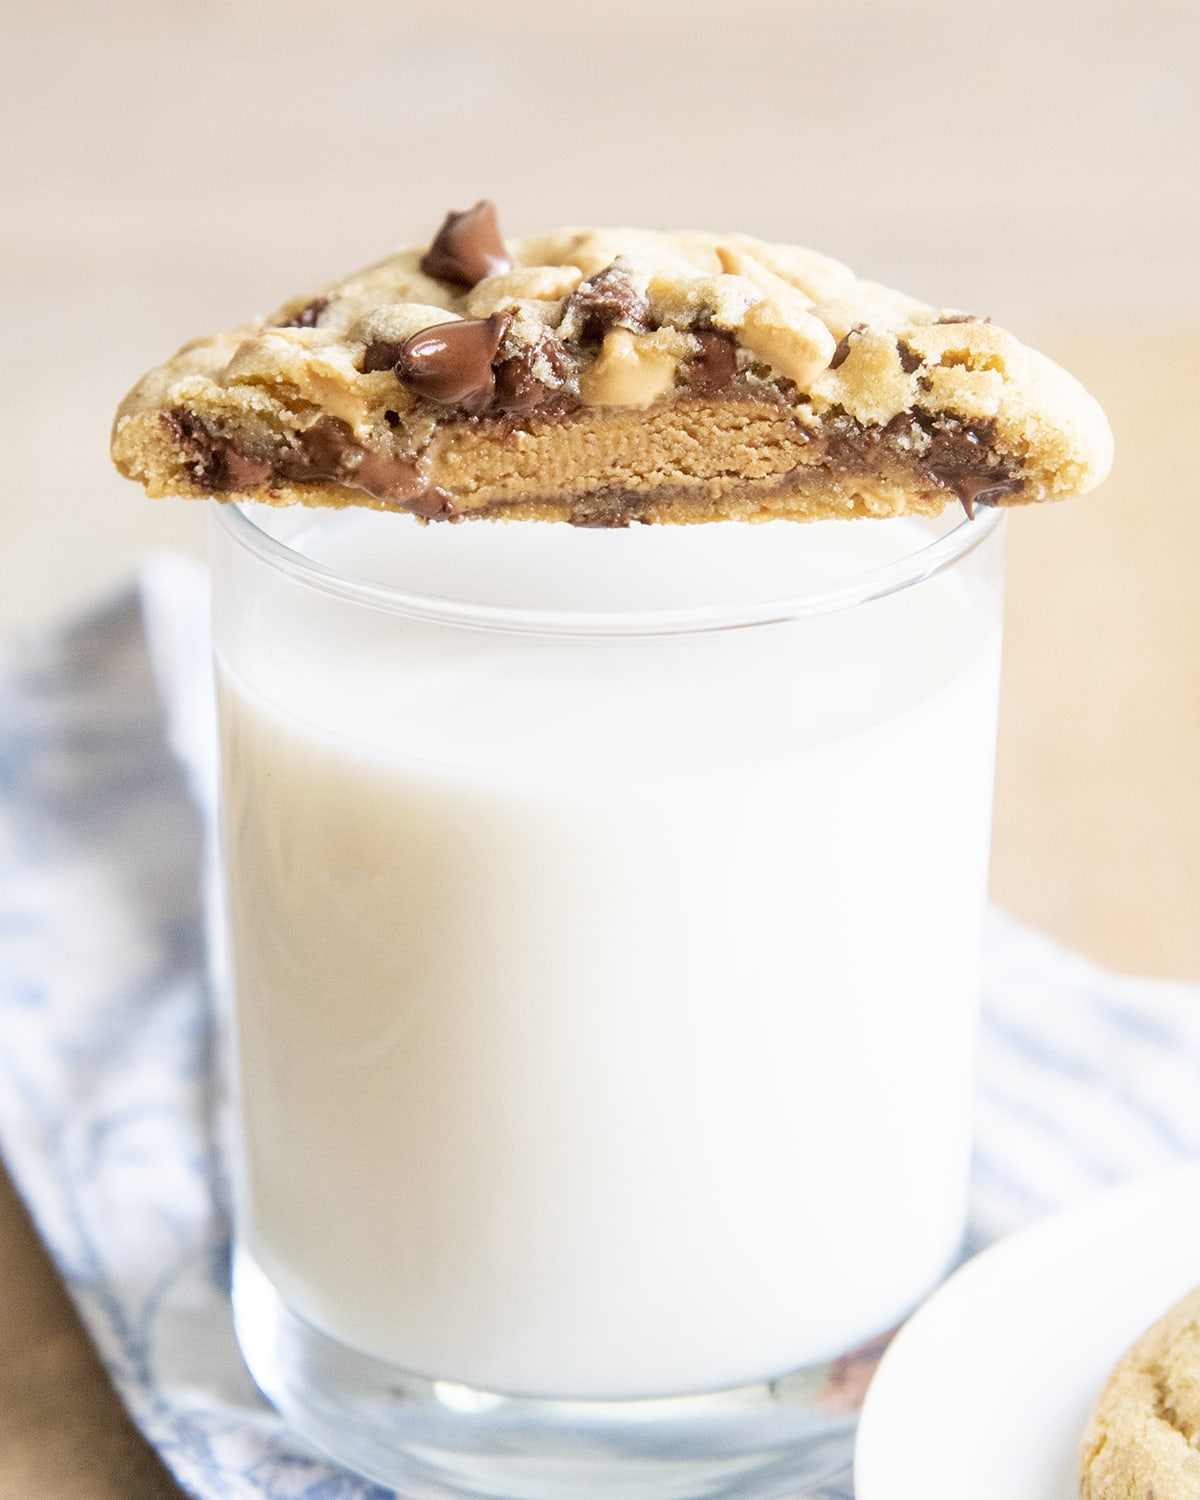 Half a cookie set on a cup of glass, showing the inside of the cookie with a peanut butter cup, and melted chocolate chips.